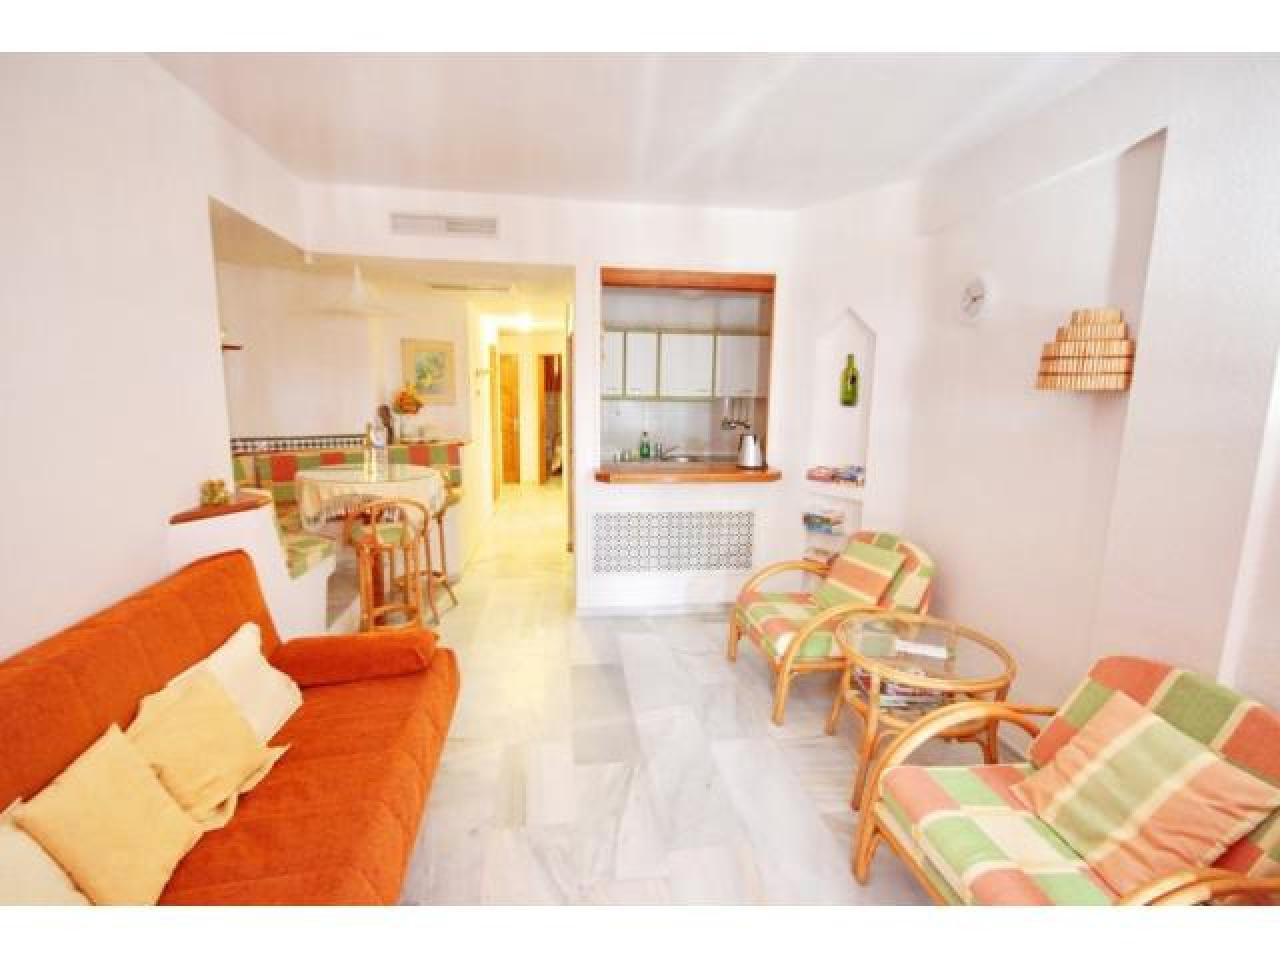 Apartment in Tenerife for rent and sale » #879 - 4